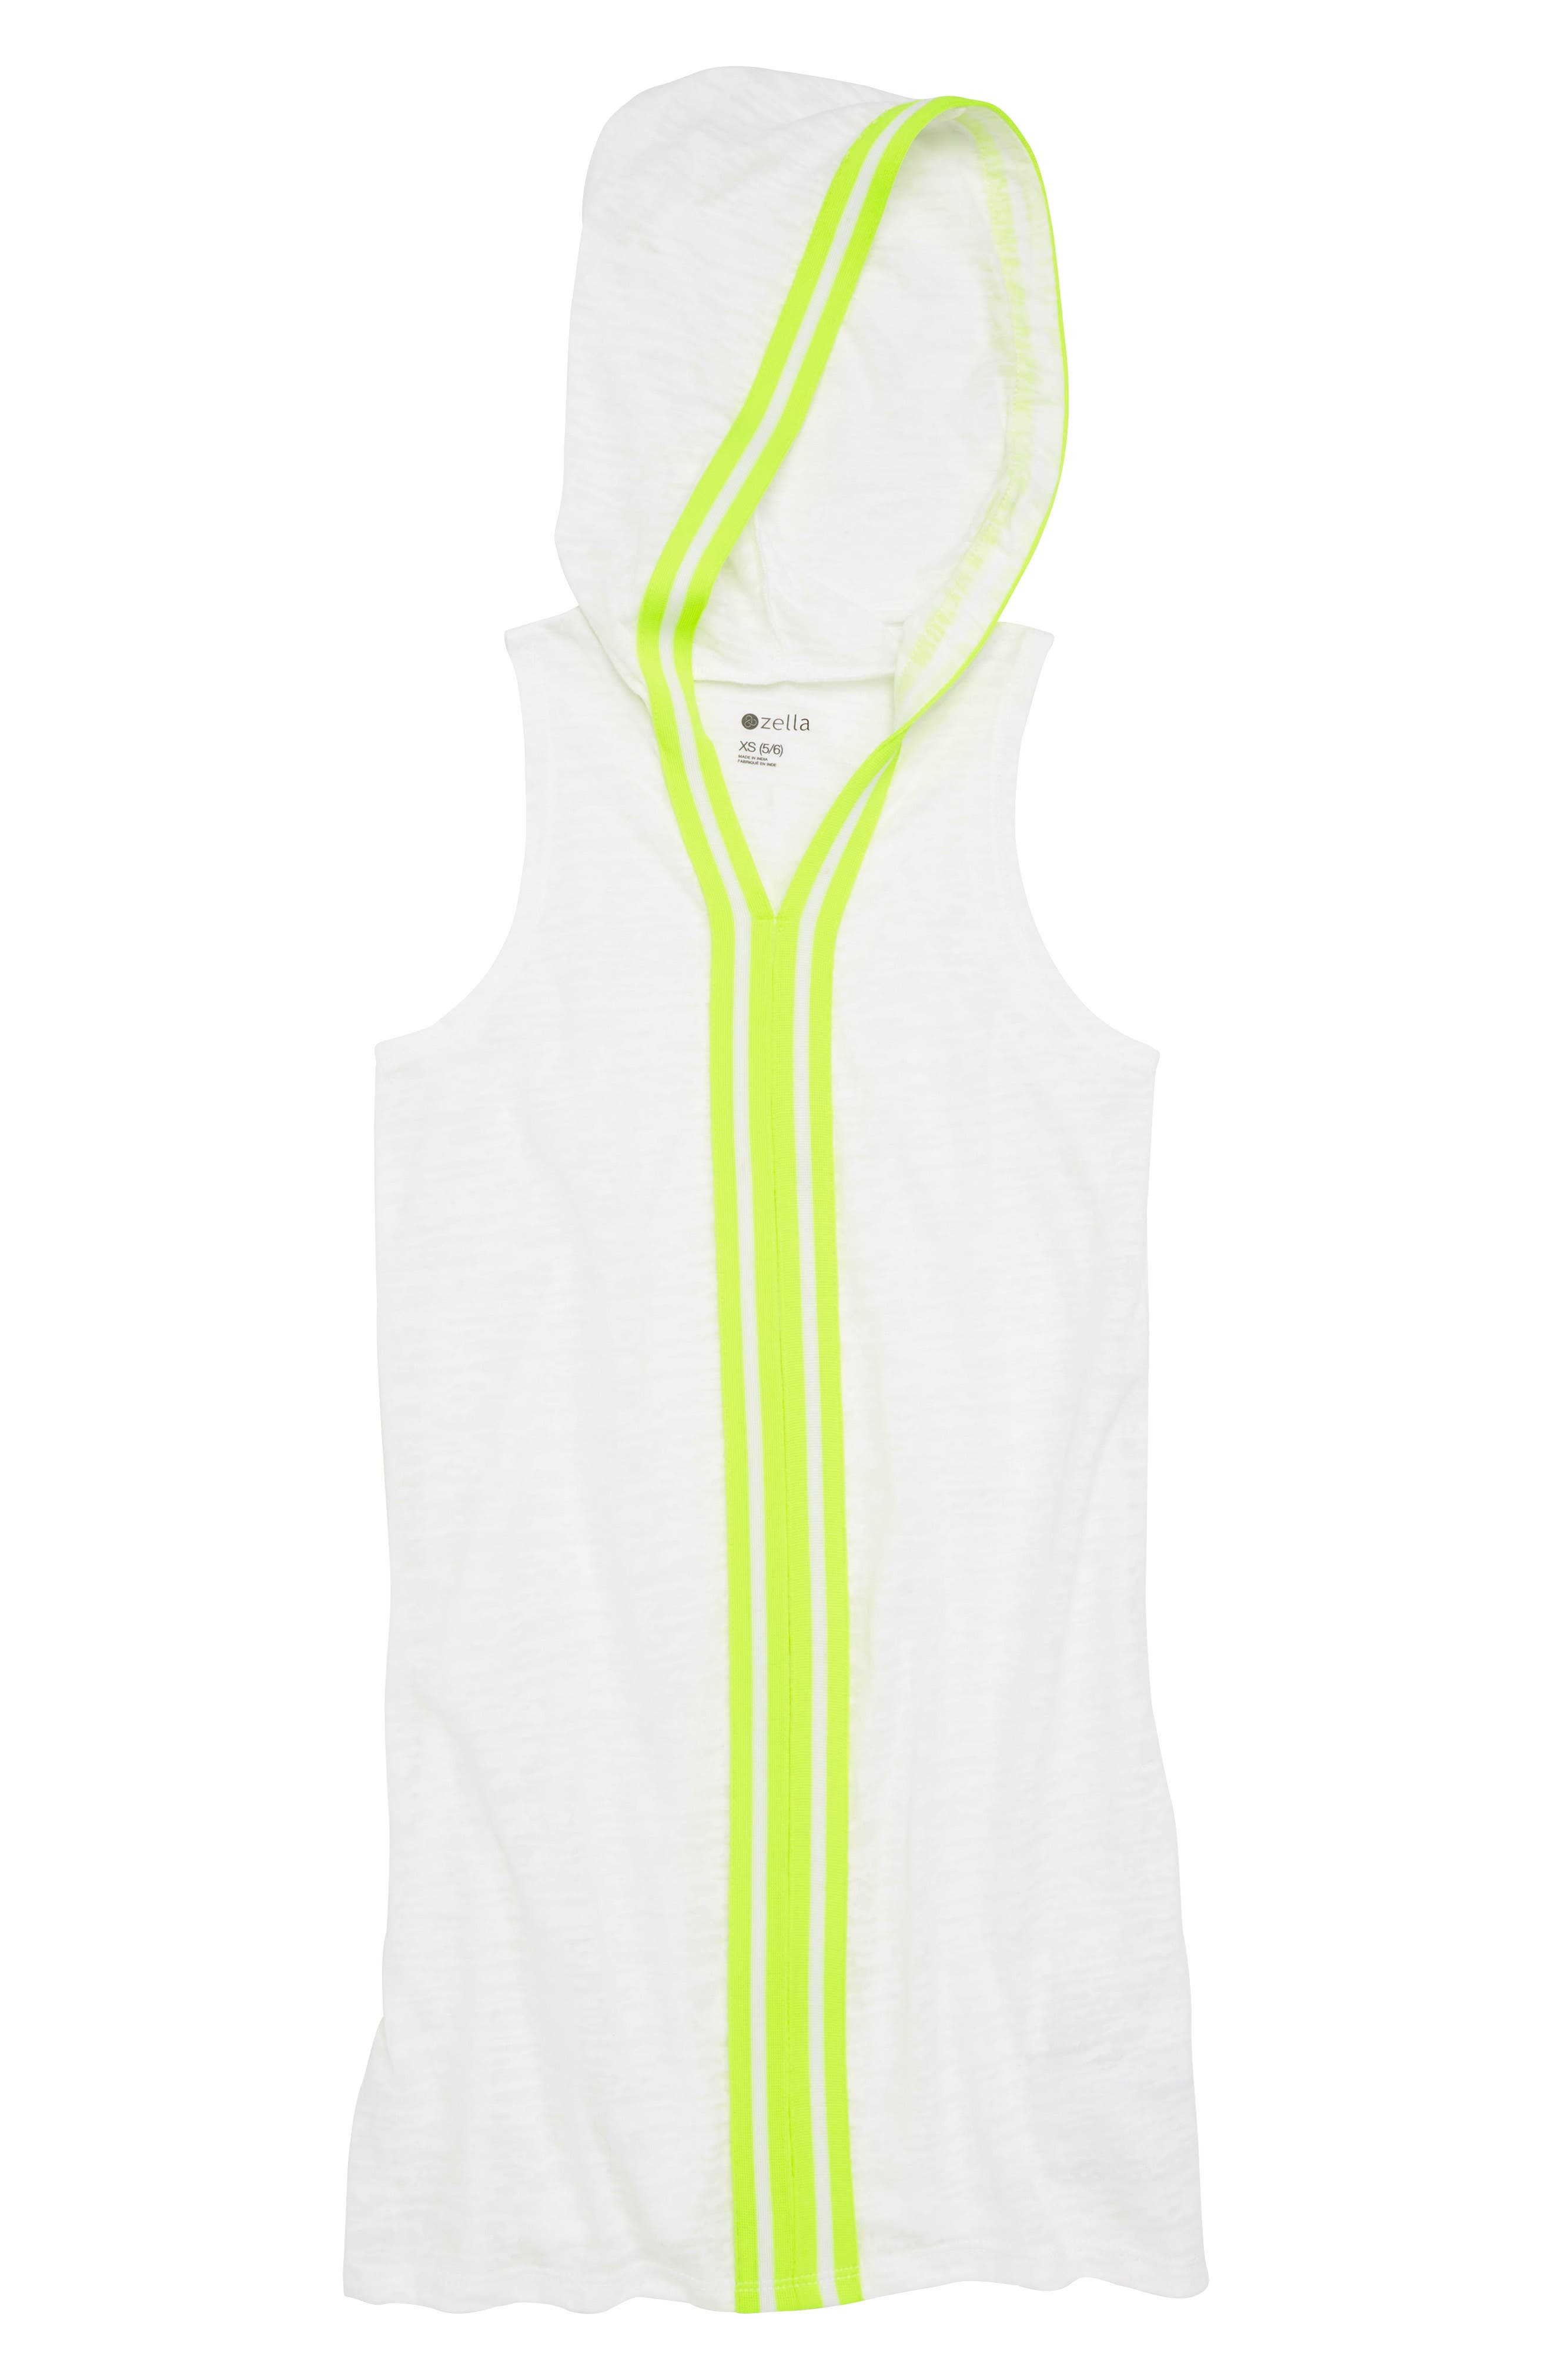 Zella Neon Hooded Cover-Up Dress,                             Main thumbnail 1, color,                             White